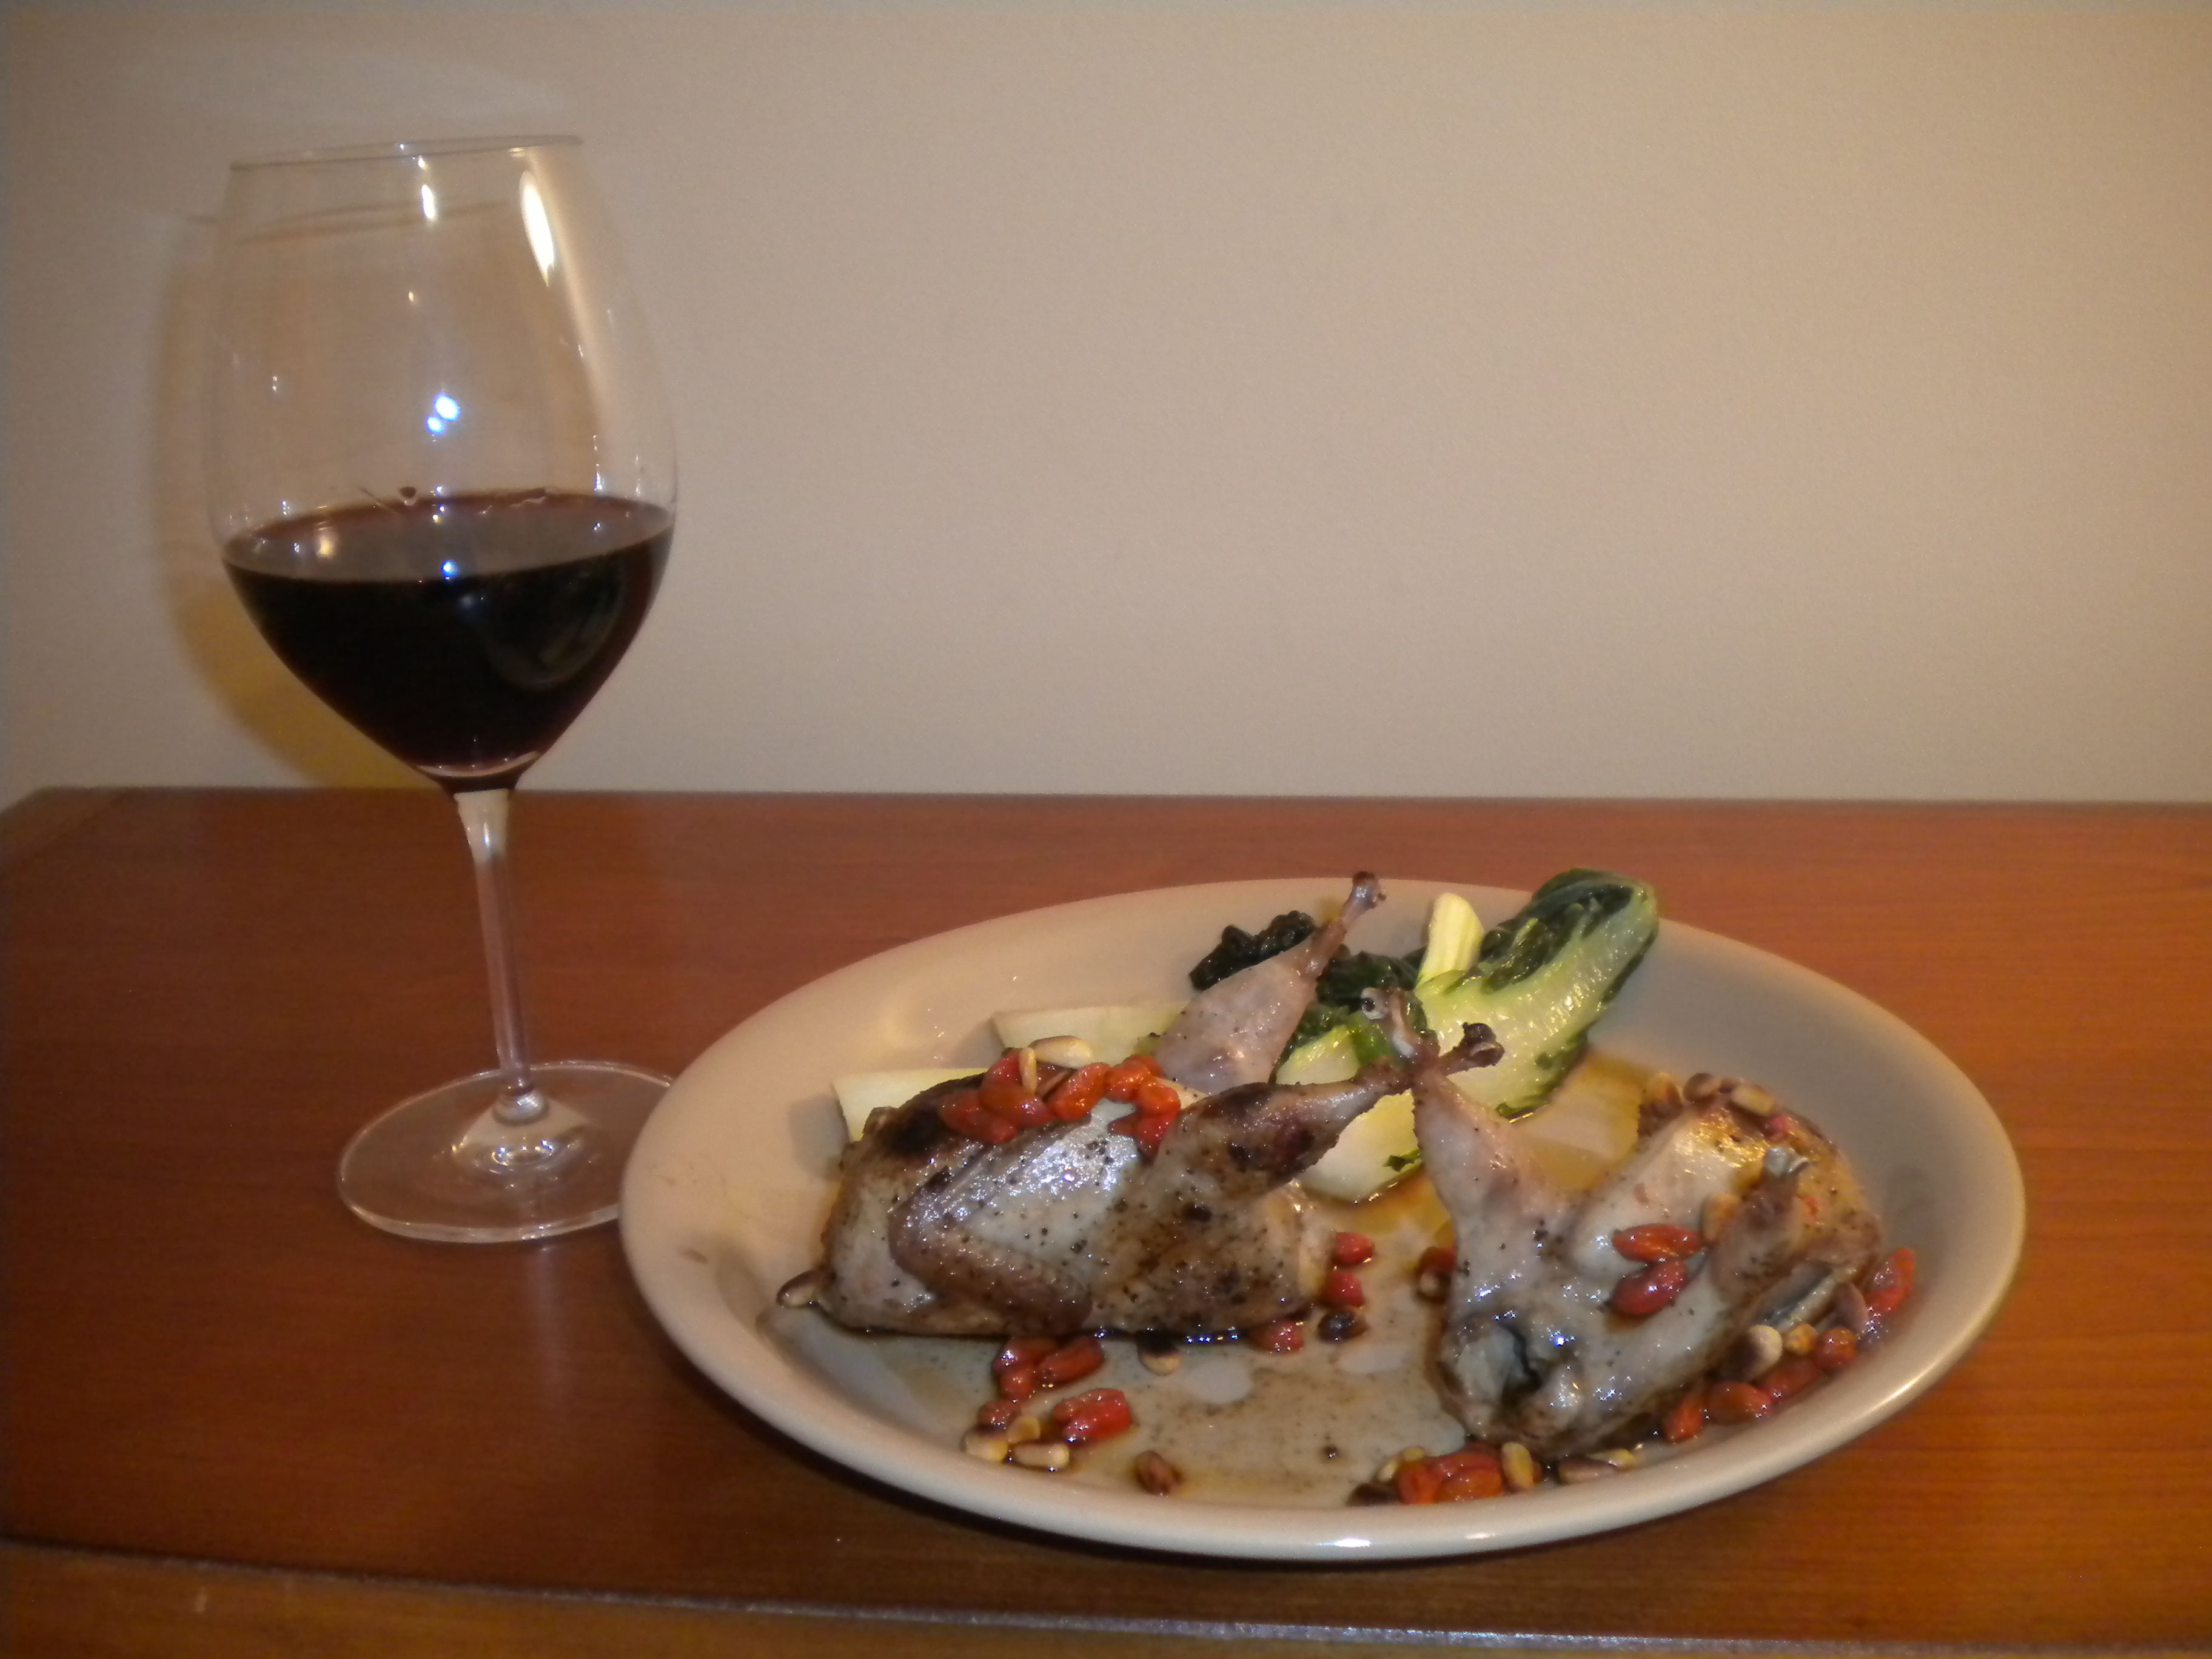 Wine: 2009 Meiomi Pinot Noir   Entree: Grilled Quail with Goji Berries and Pine Nuts and Bok Choy